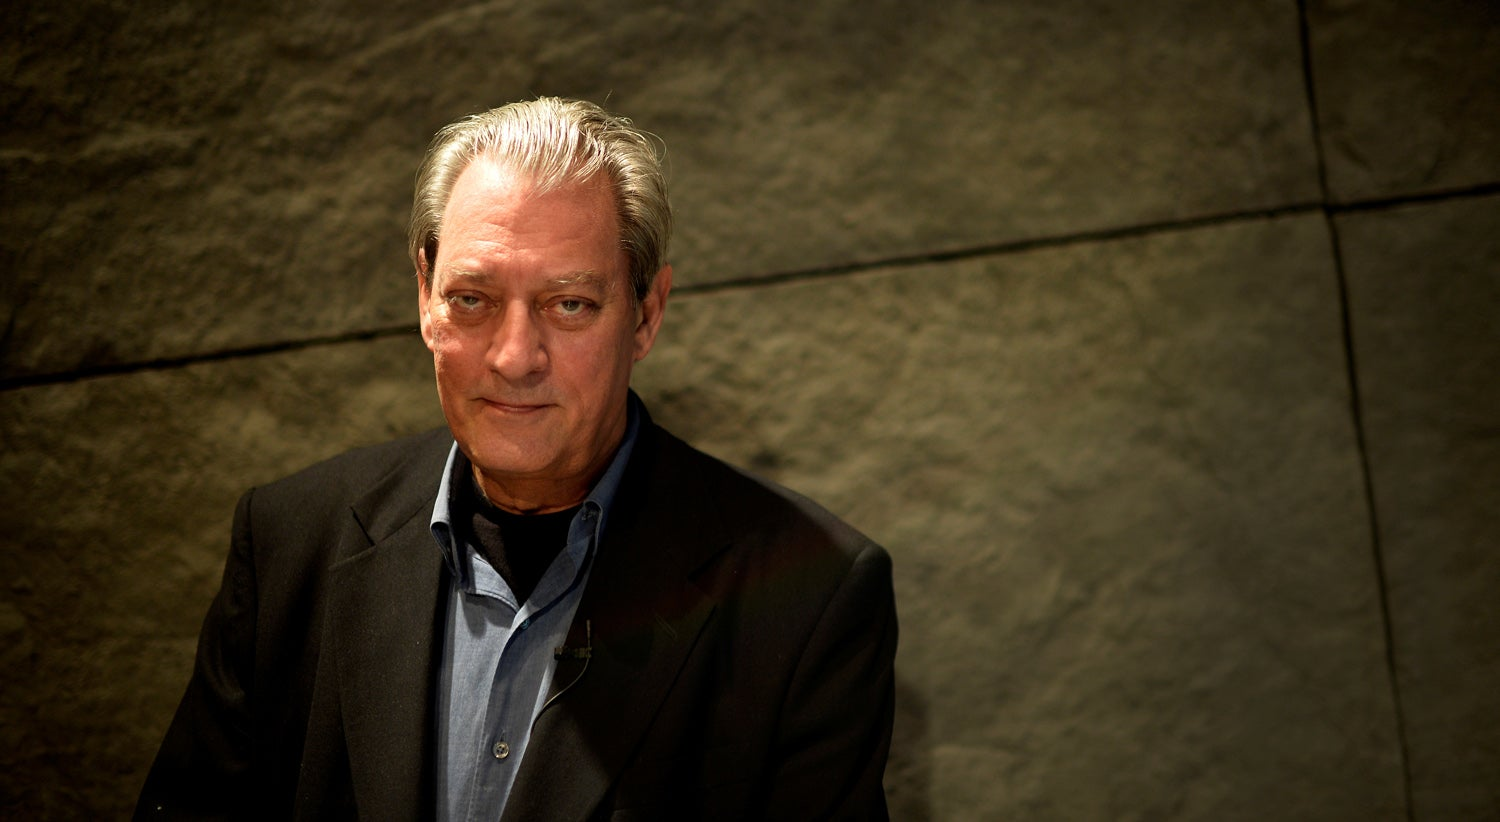 Paul Auster na shortlist do Booker Prize deste ano